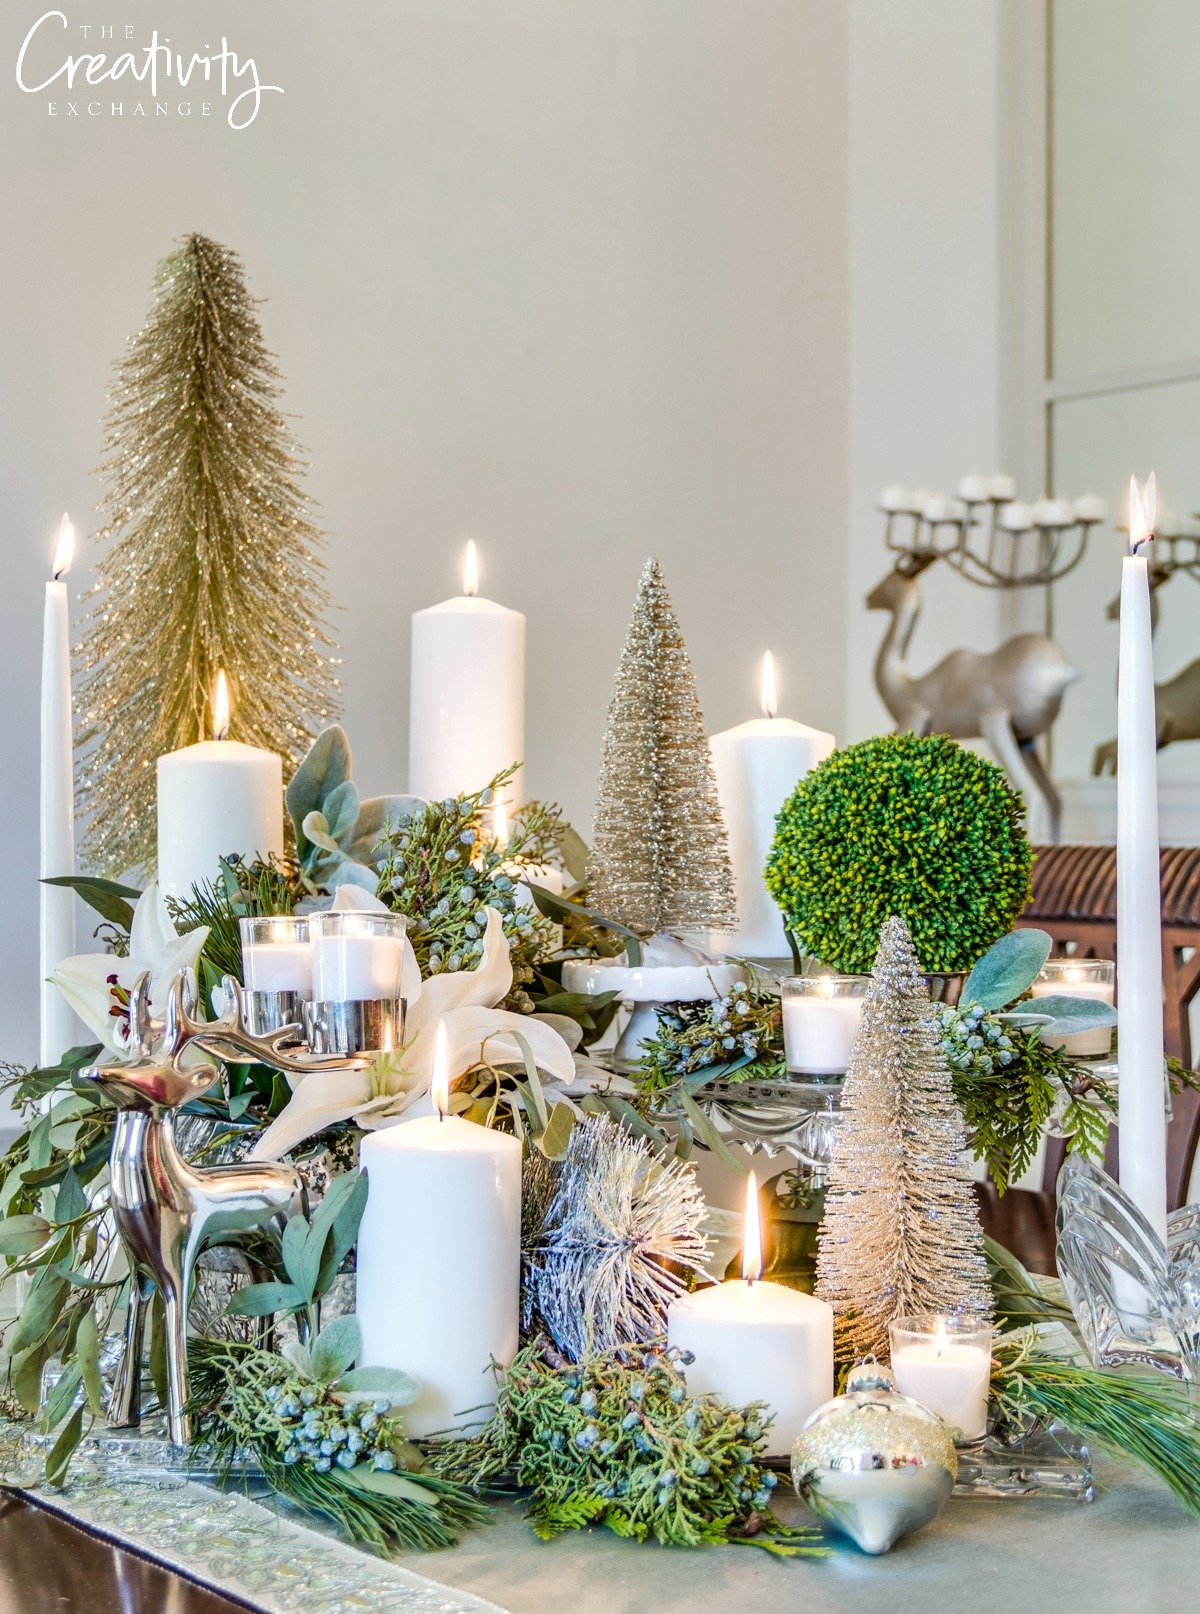 Christmas tablescape using layered cake stands, greenery and candles.